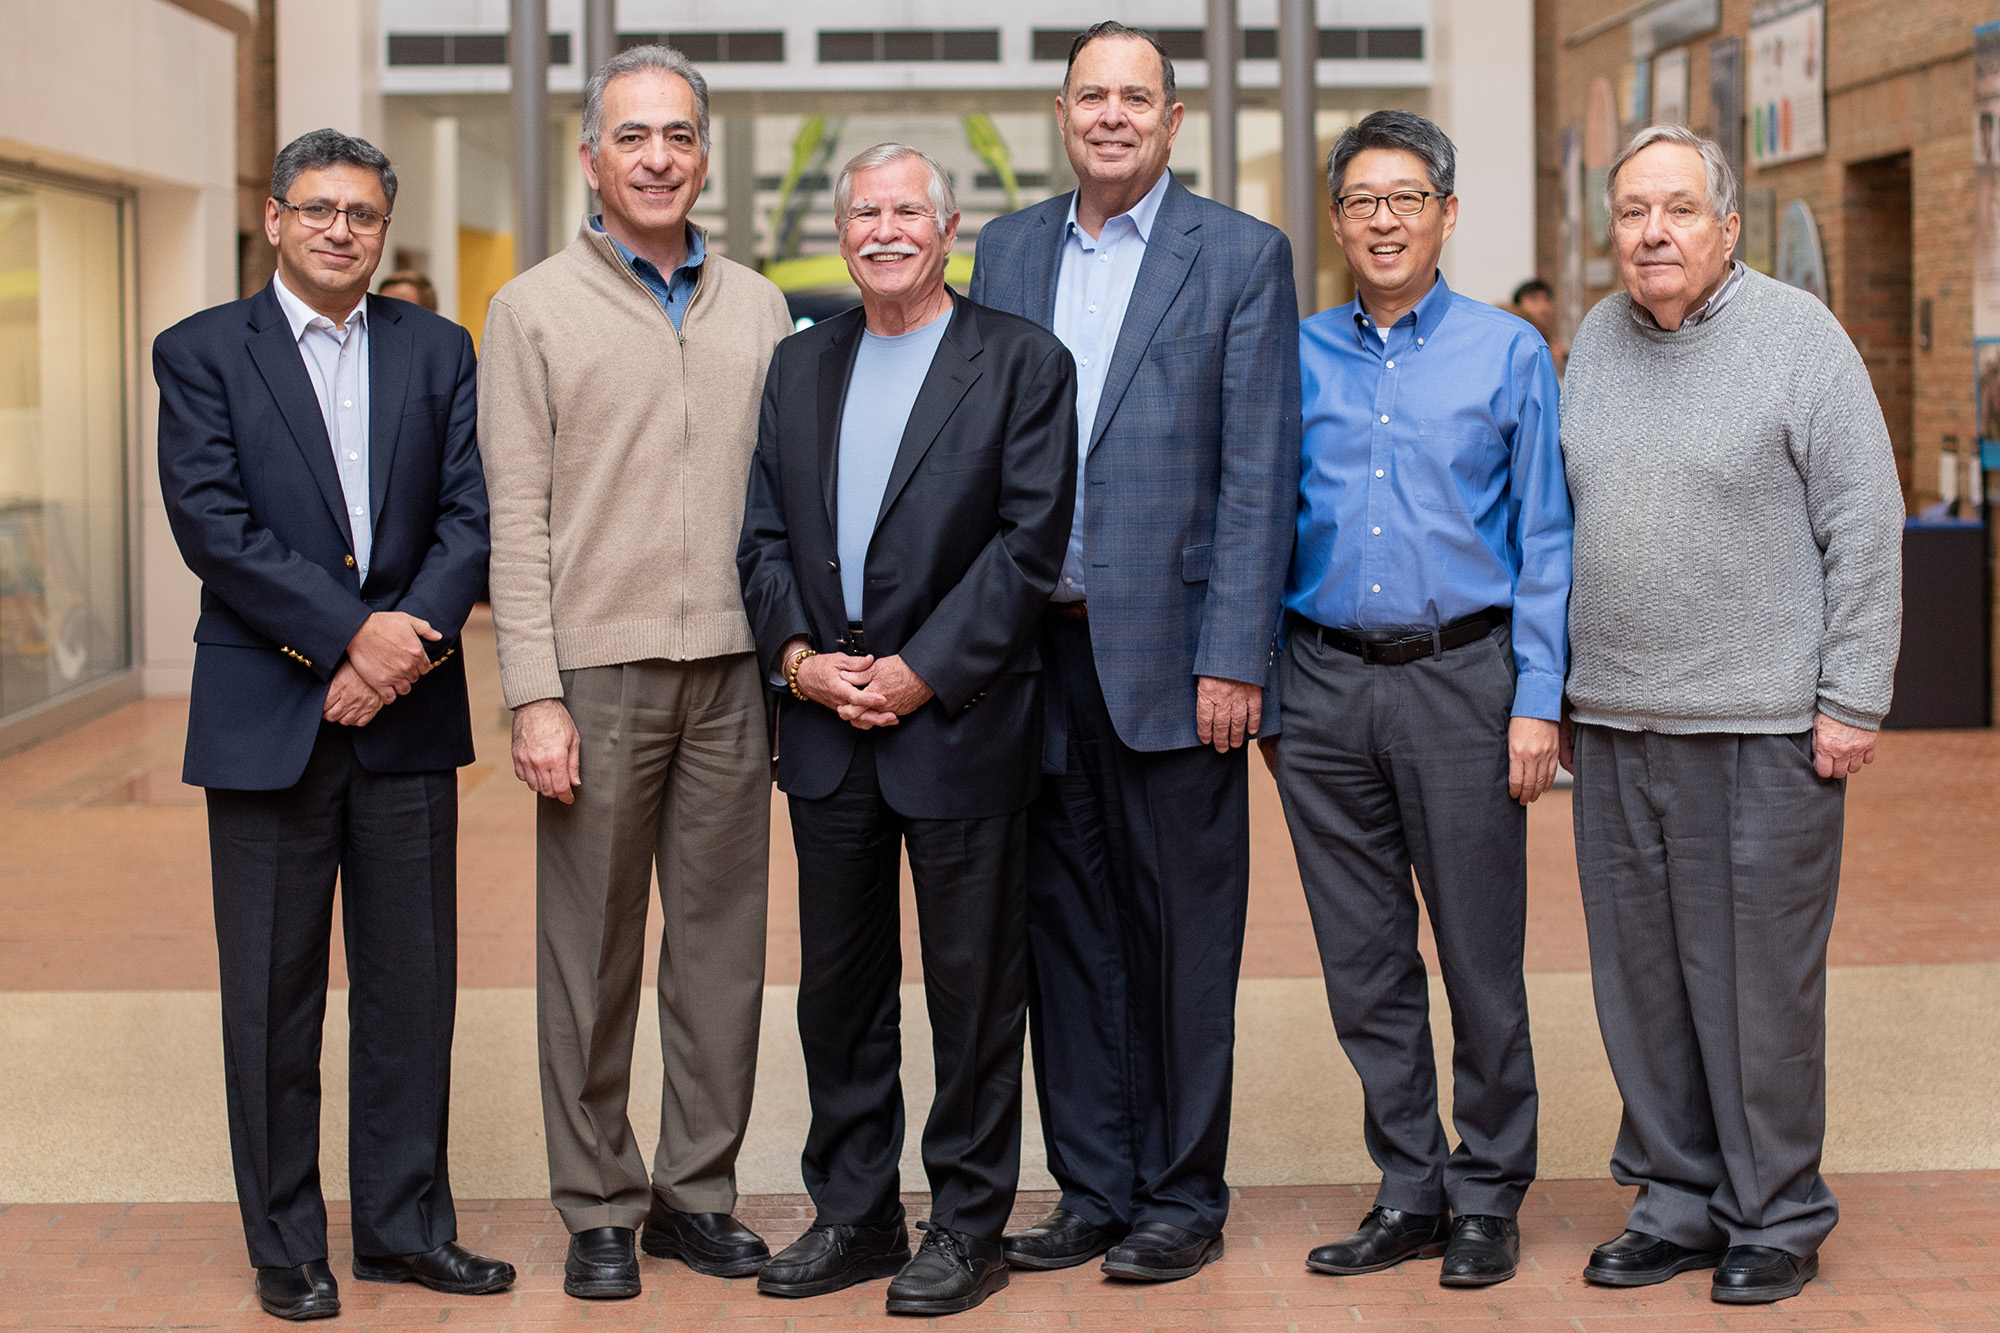 Dr. Kurt Petersen stands with a group of current and former faculty